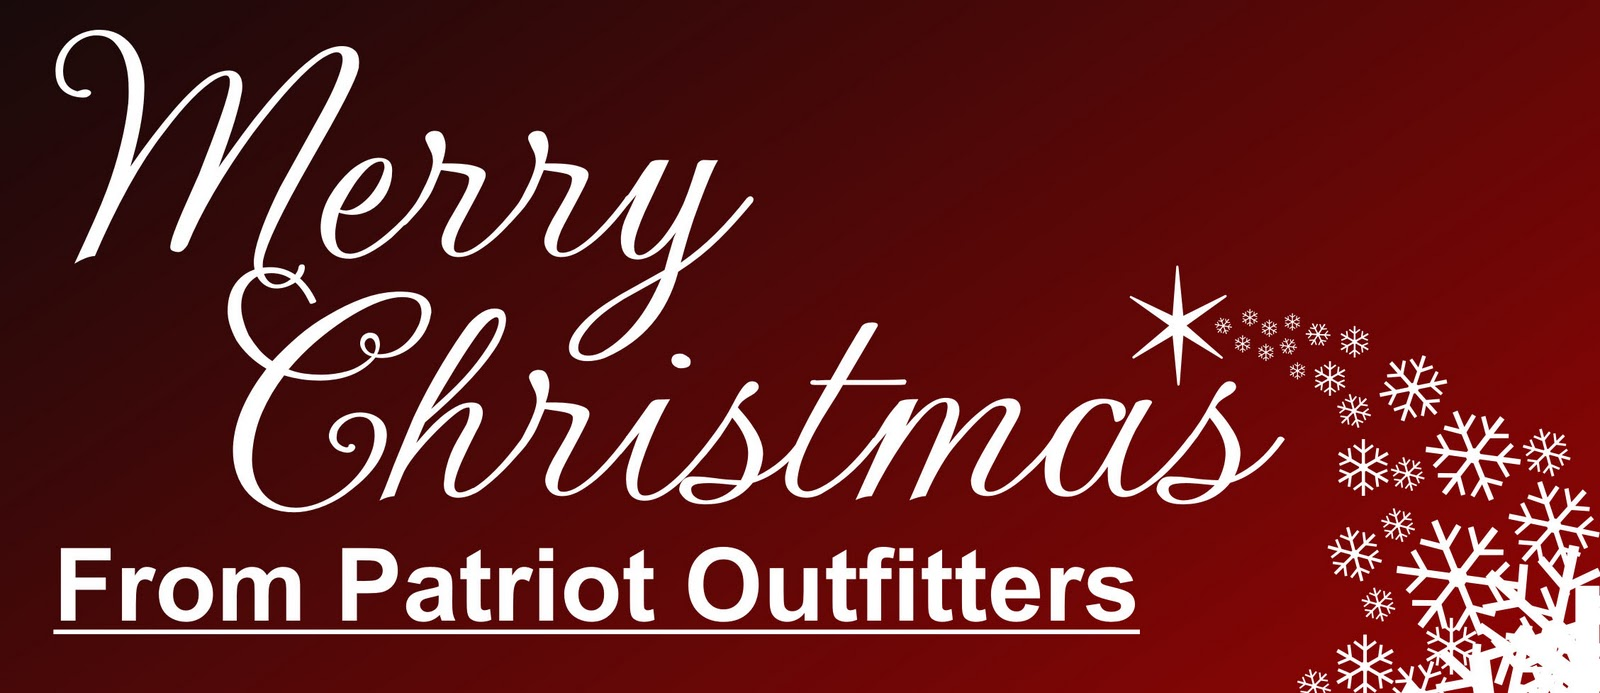 8def4824c9f PATRIOT OUTFITTERS  Patriot Outfitters office closing for Christmas